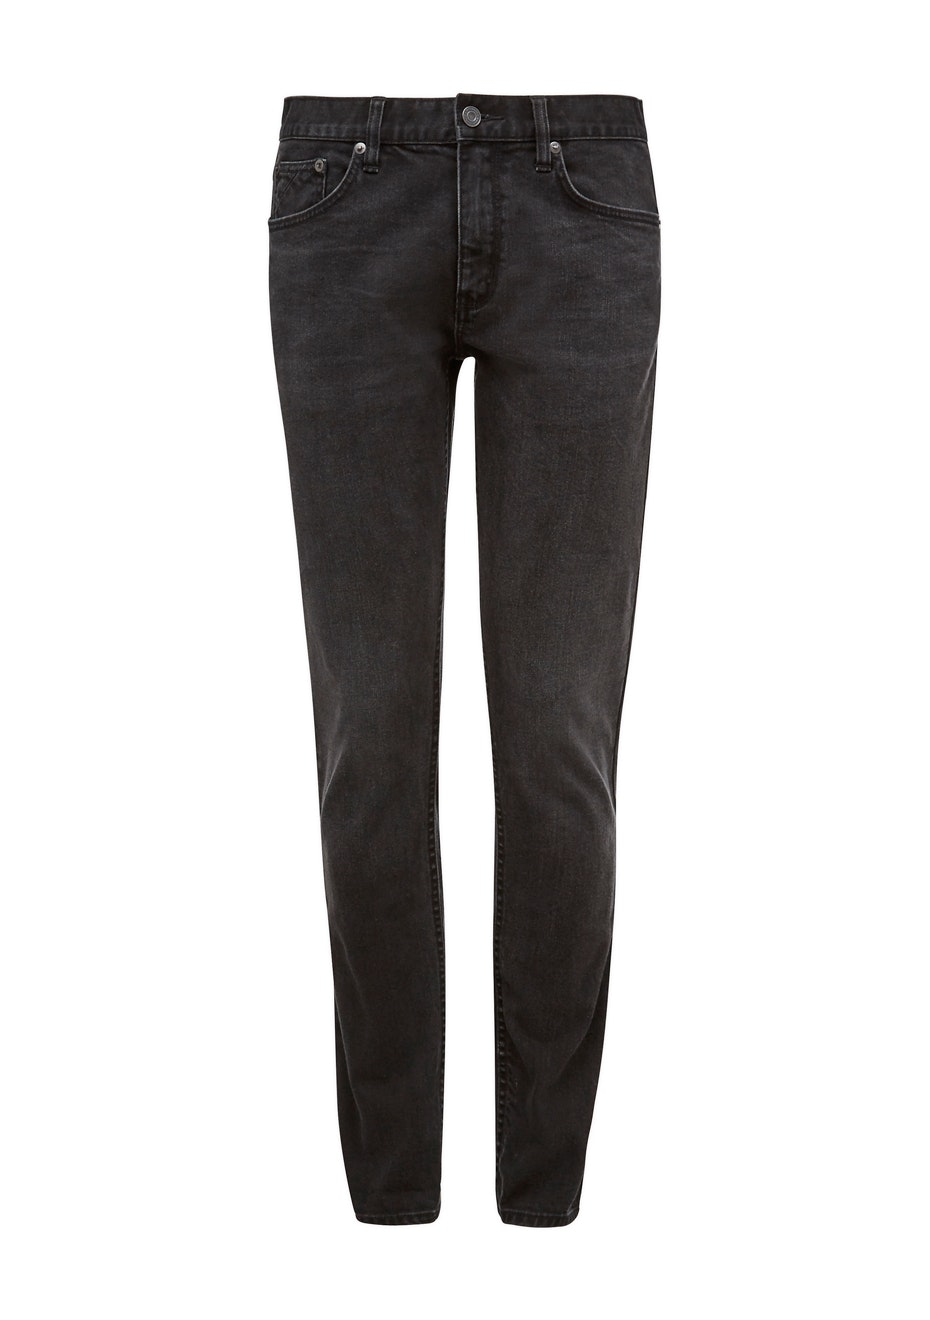 French Connection - Camden Slim Washed Charcoal Je - Washed Charcoal